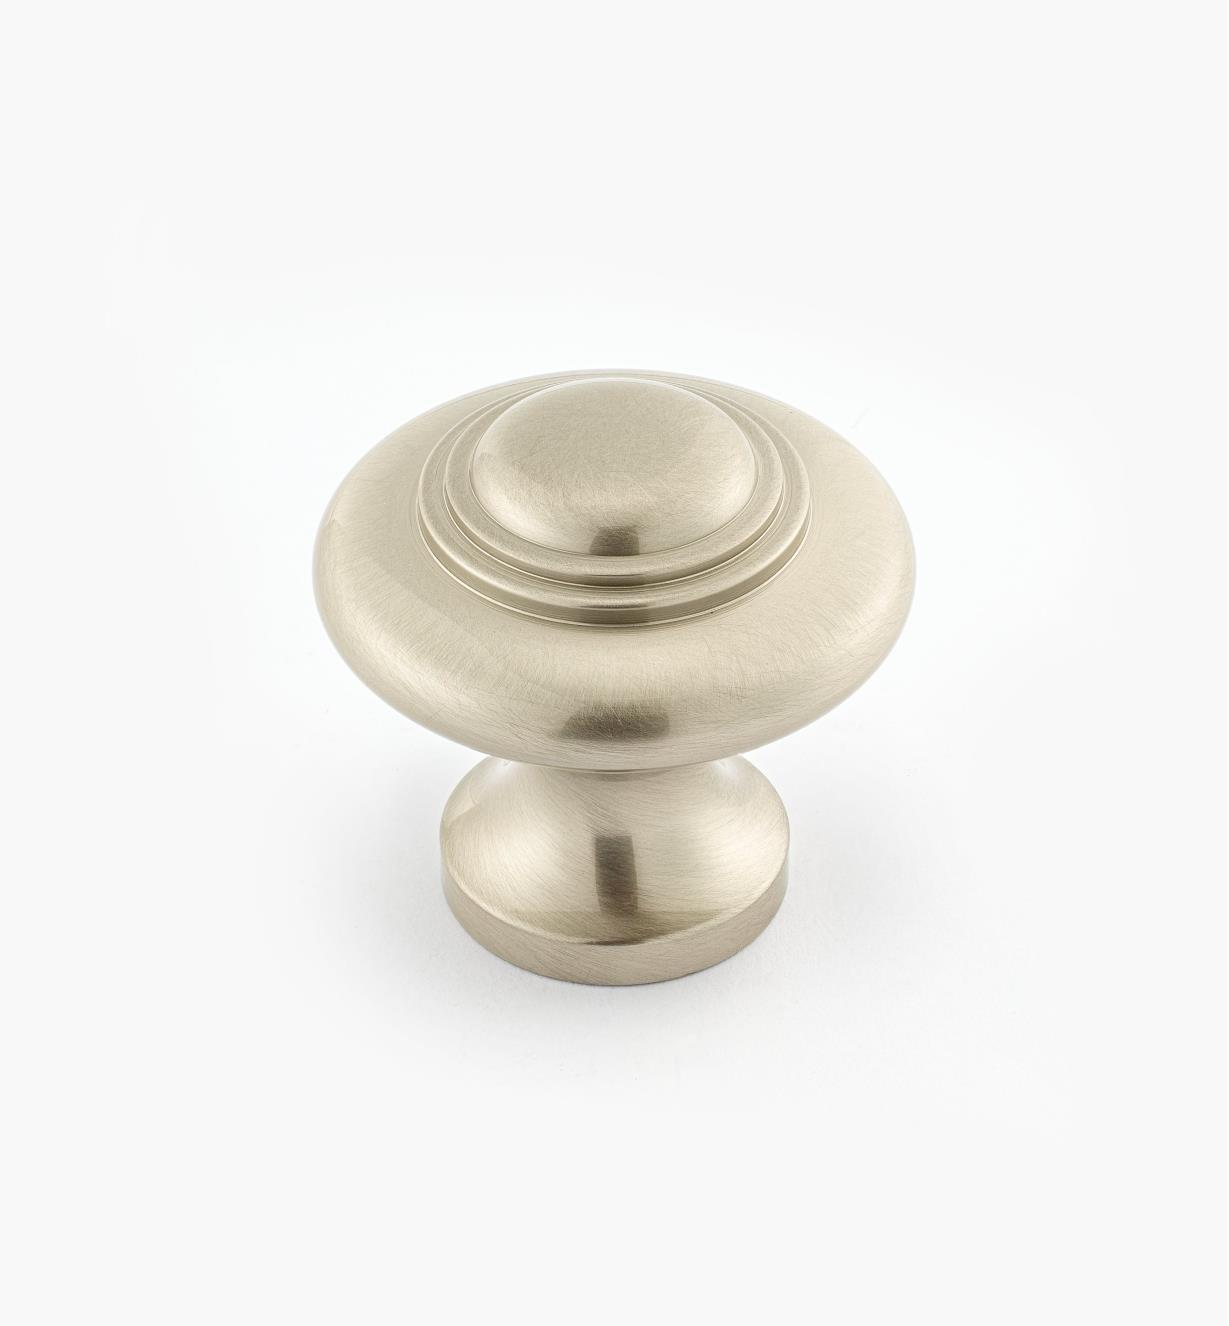 "02W2663 - Satin Nickel Suite - 1 5/16"" x 1 1/4"" Cast Brass Ring Knob"